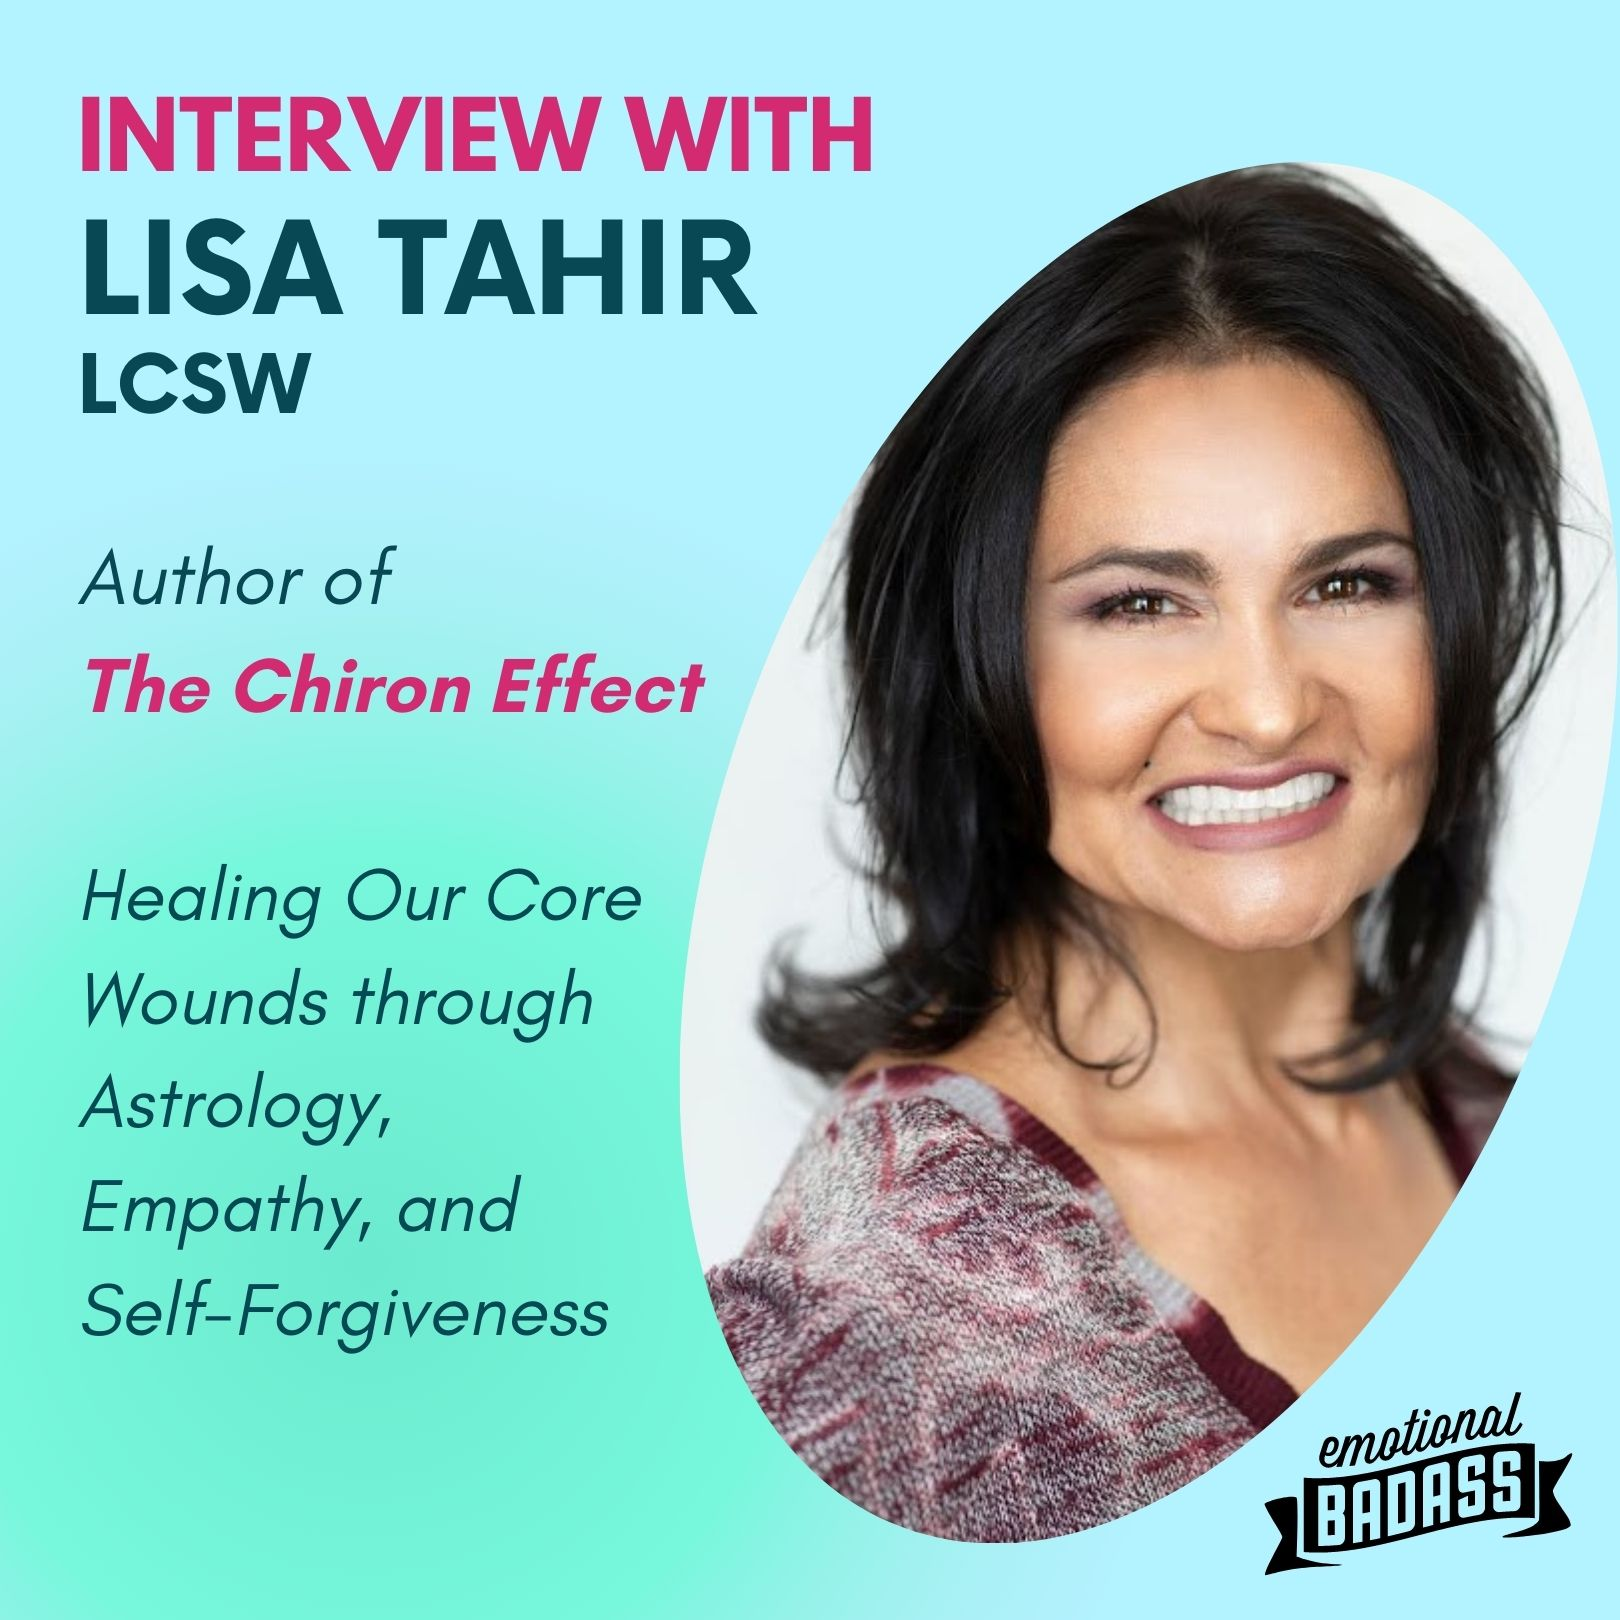 Interview with Lisa Tahir - LCSW   Author of The Chiron Effect, Healing Our Core Wounds through Astrology, Empathy, and Self-Forgiveness